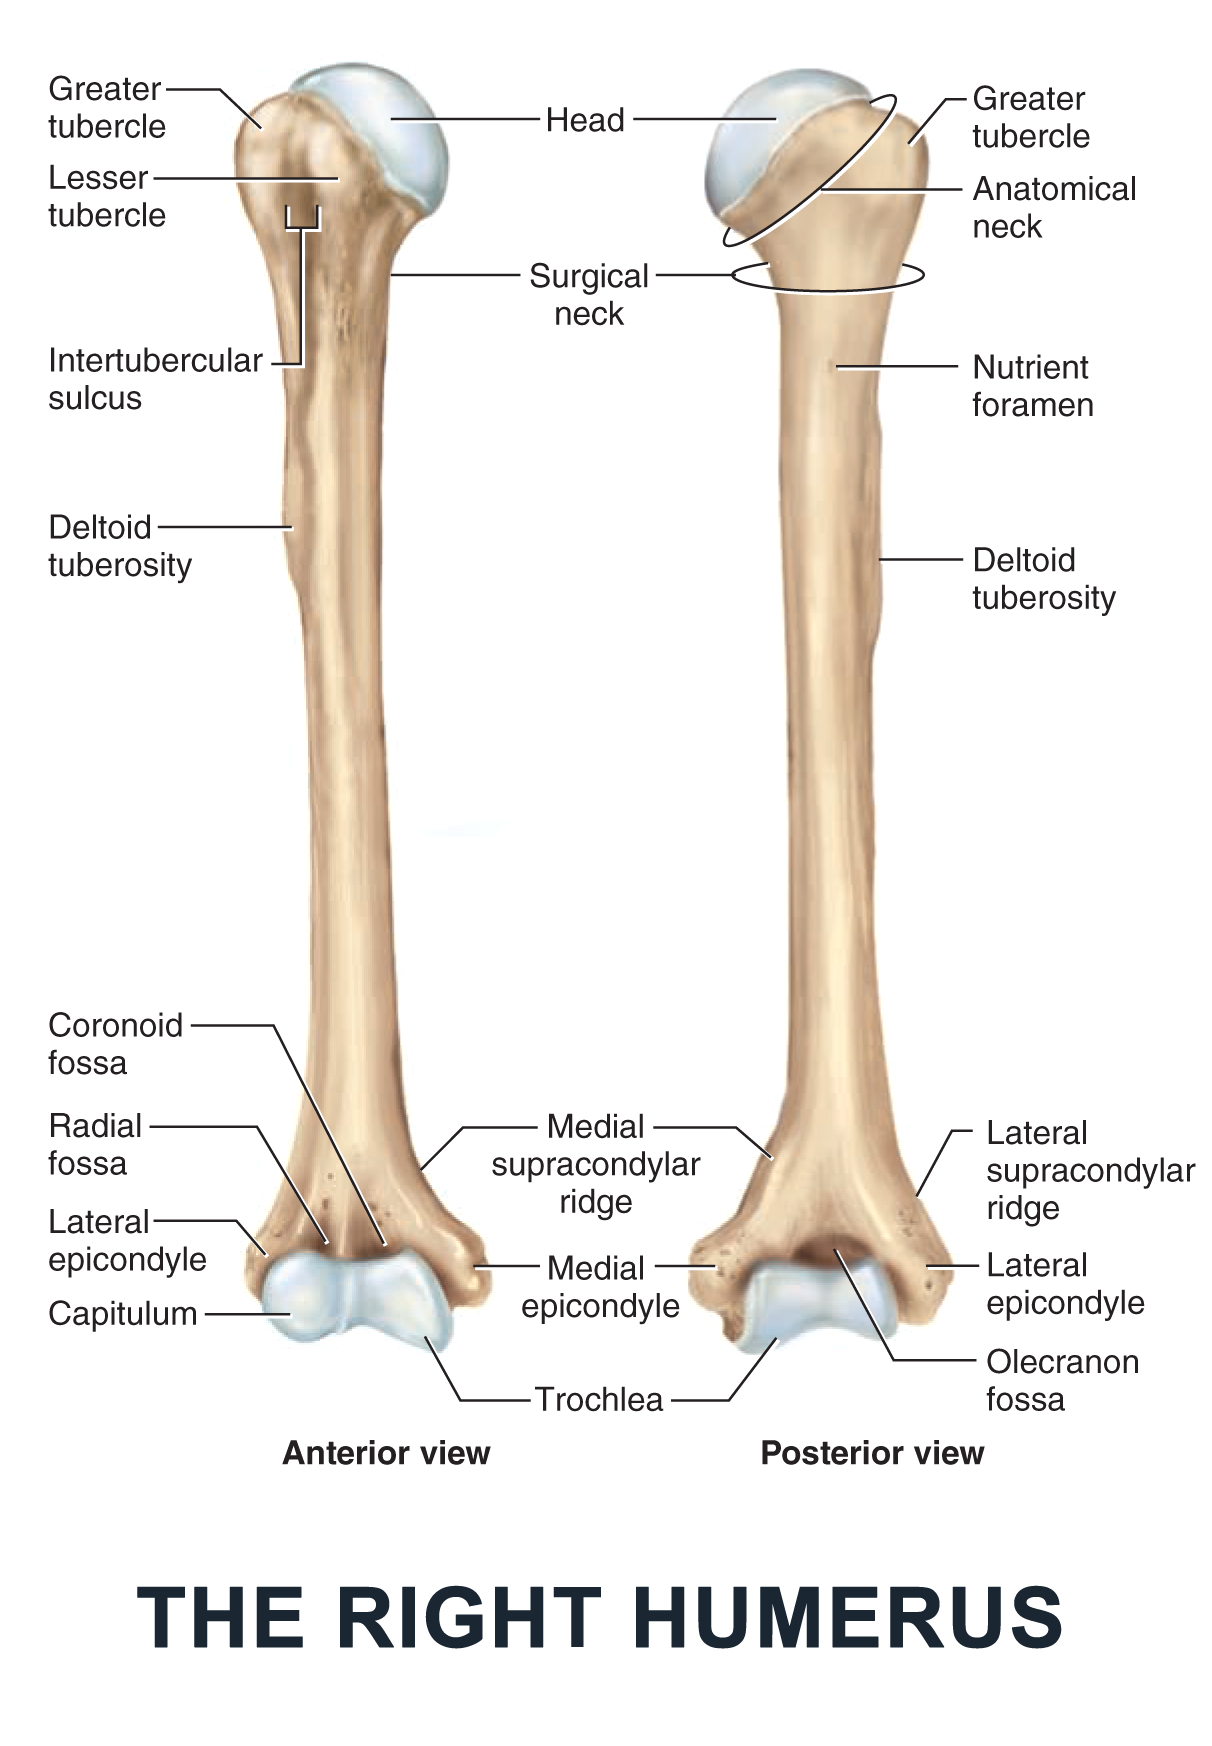 The Right Humerus - #anatomy images illustrations #anatomy images ...